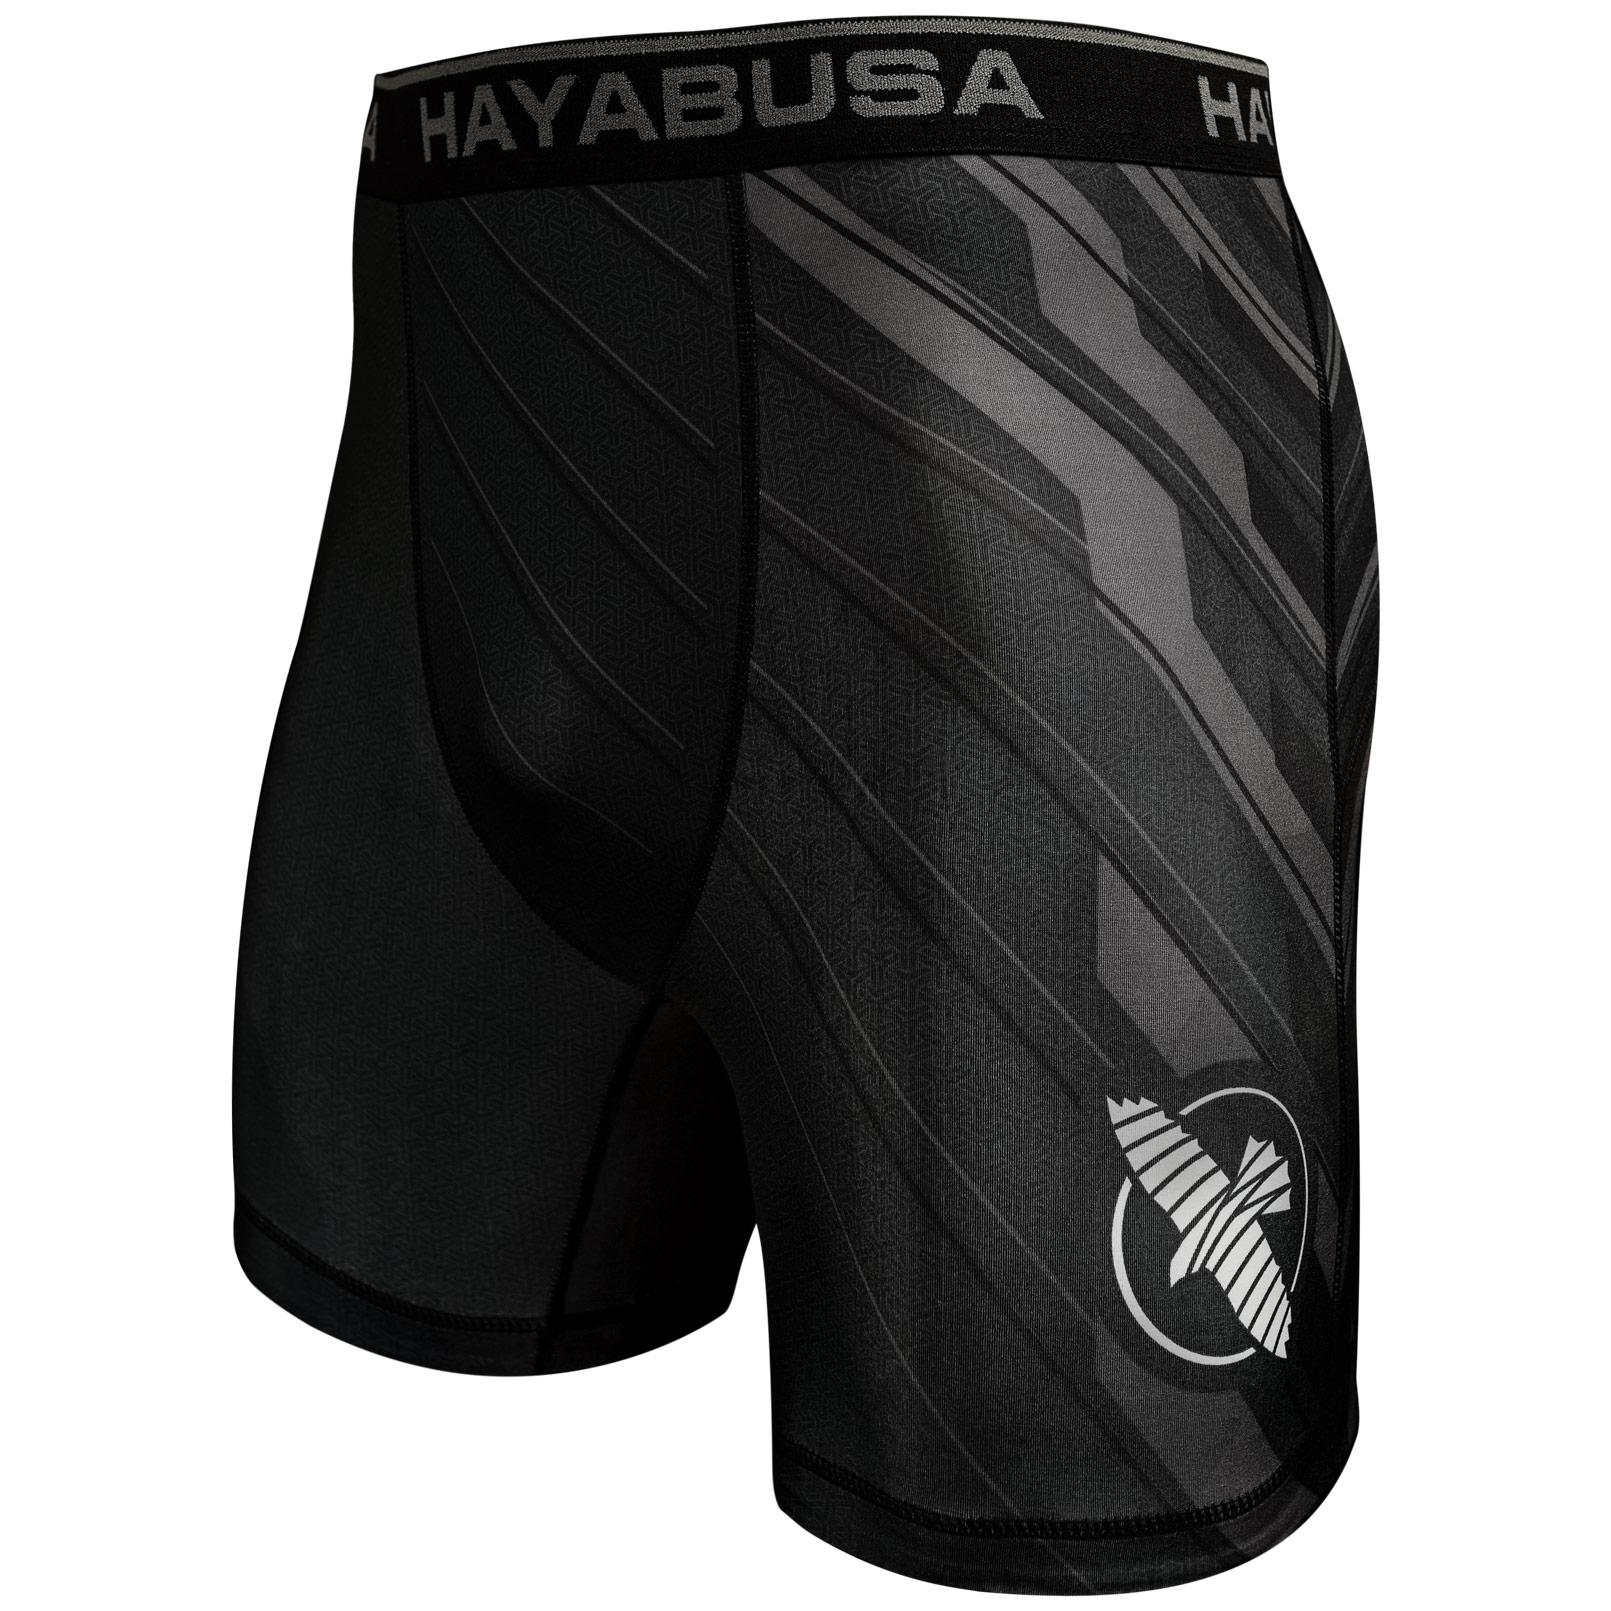 Metaru Charged -Compression Shorts